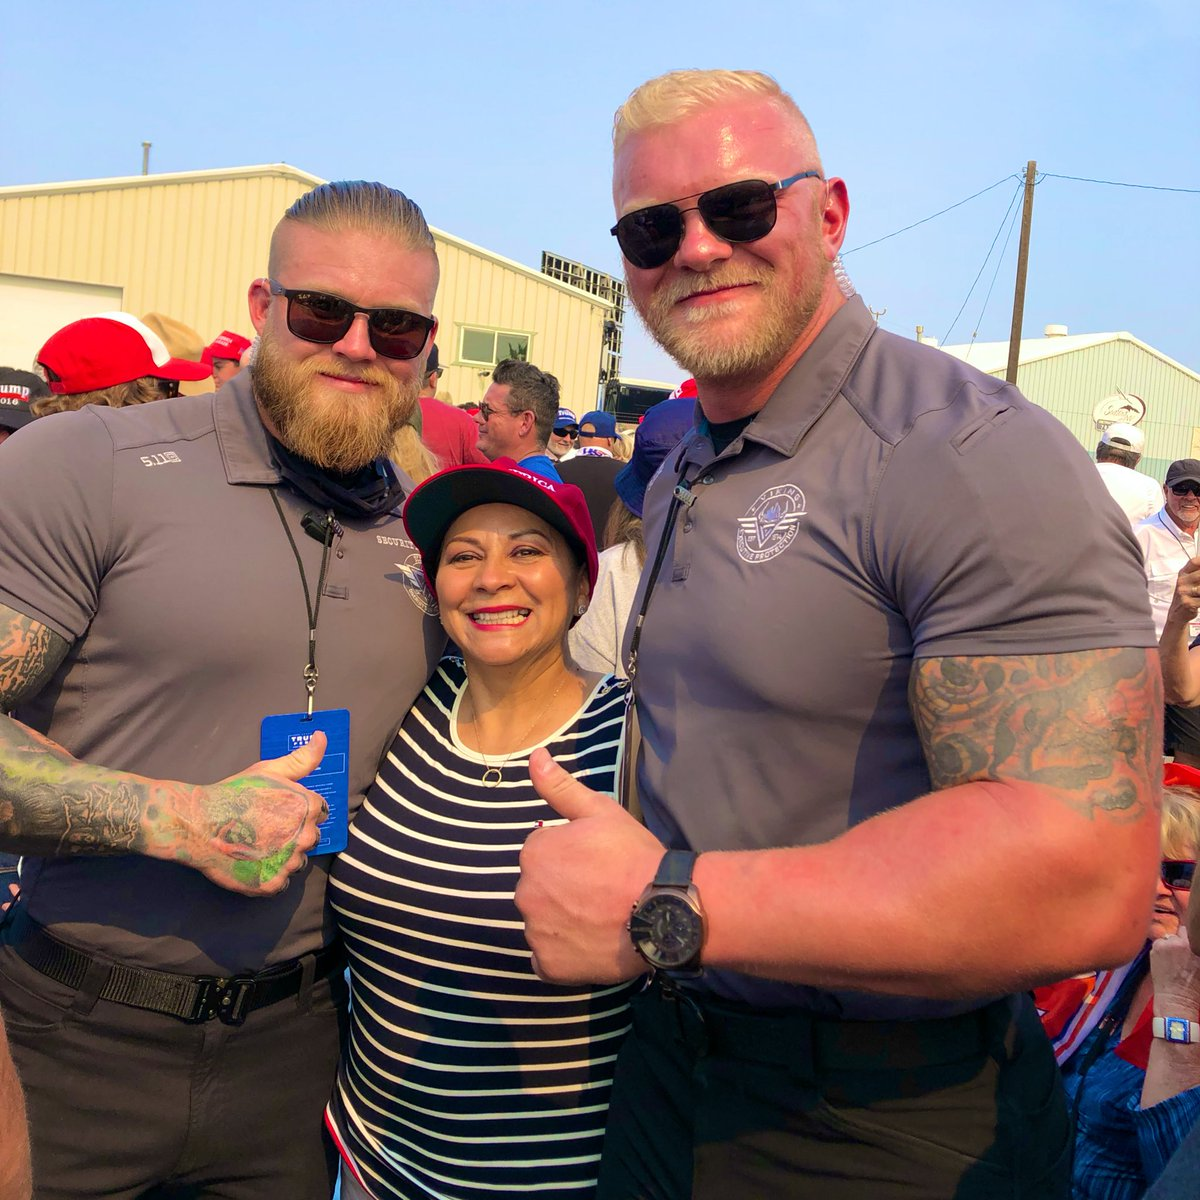 Good morning all.   We were at Trump rally all day yesterday in Nevada!  Super long day yesterday, but so much fun hanging out with many MAGA friends, volunteers, and security detail like these cool guys! 💪  #LawAndOrder #FourMoreYears  Trump2020 🚂🇺🇸💨 👉  @sandraschulze https://t.co/Cnk8GloQVe